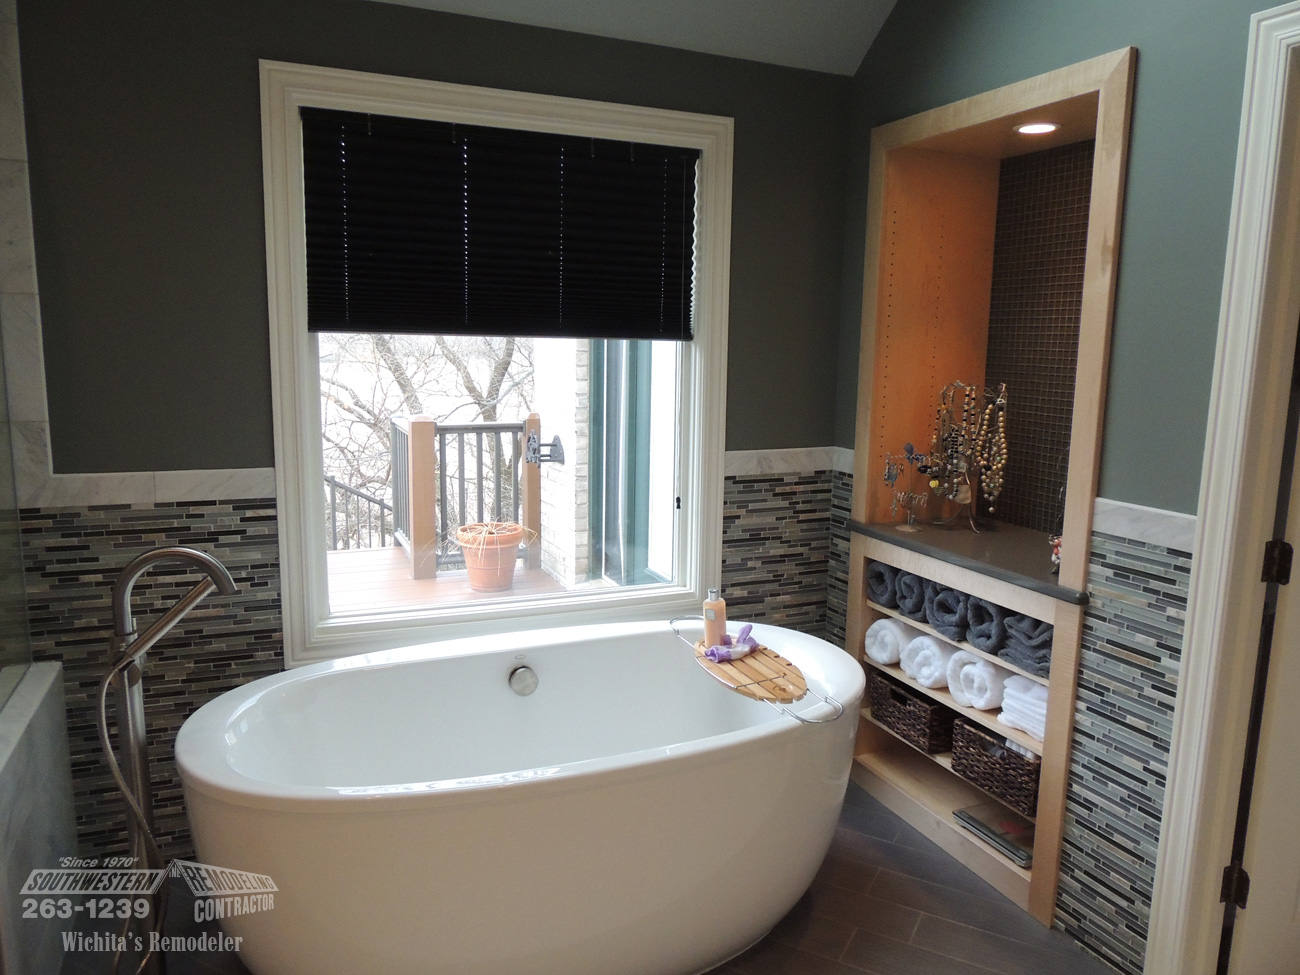 Bathroom Remodeling Southwestern Remodeling Wichita - How long to renovate a bathroom